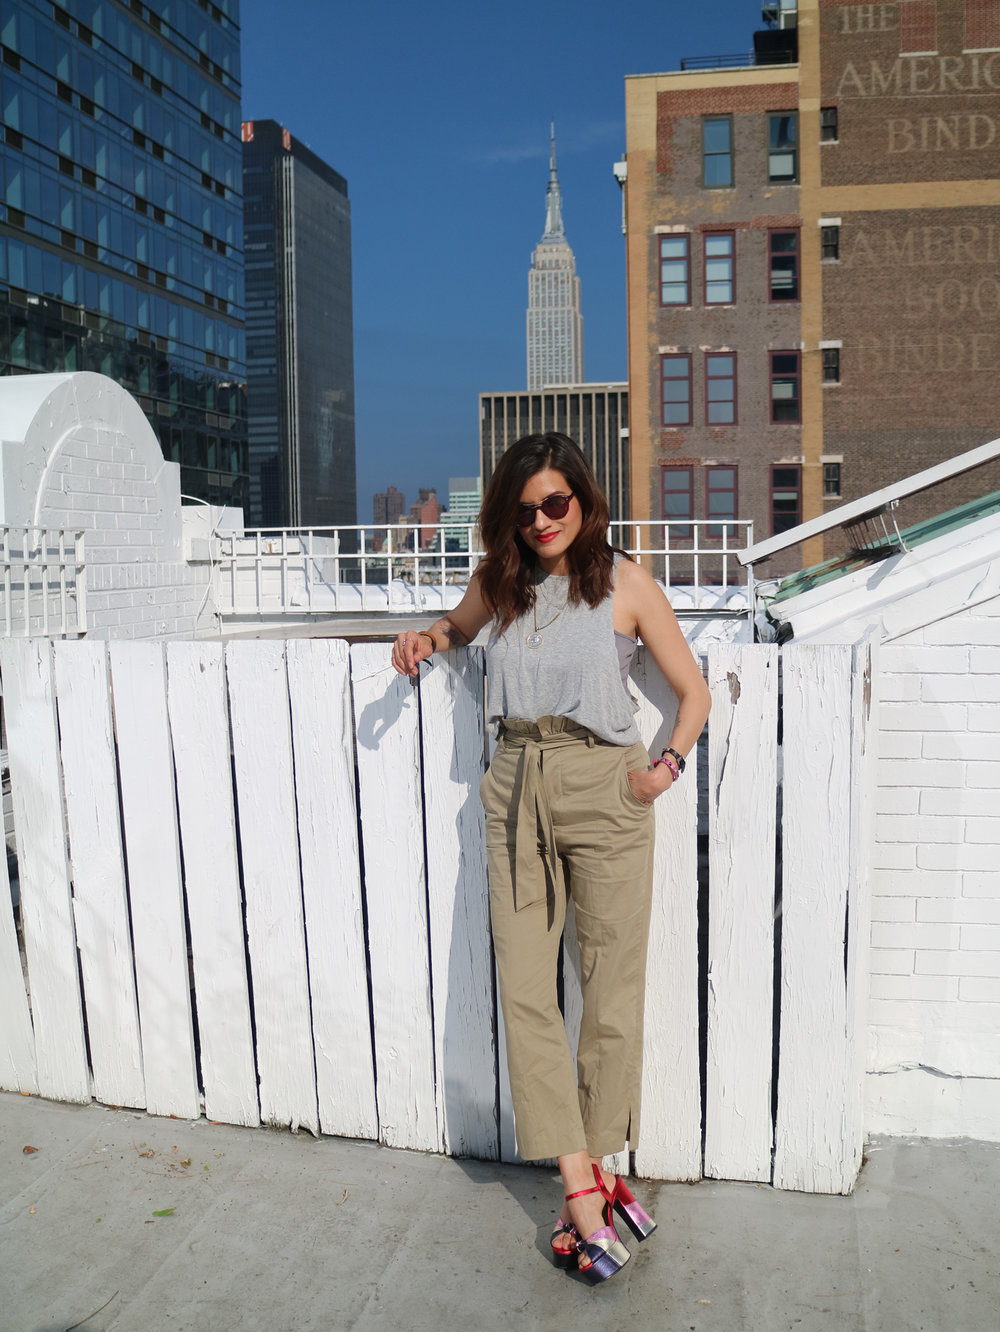 zara pants, grey top, metallic saint laurent platform sandals in New York City_3122.jpg